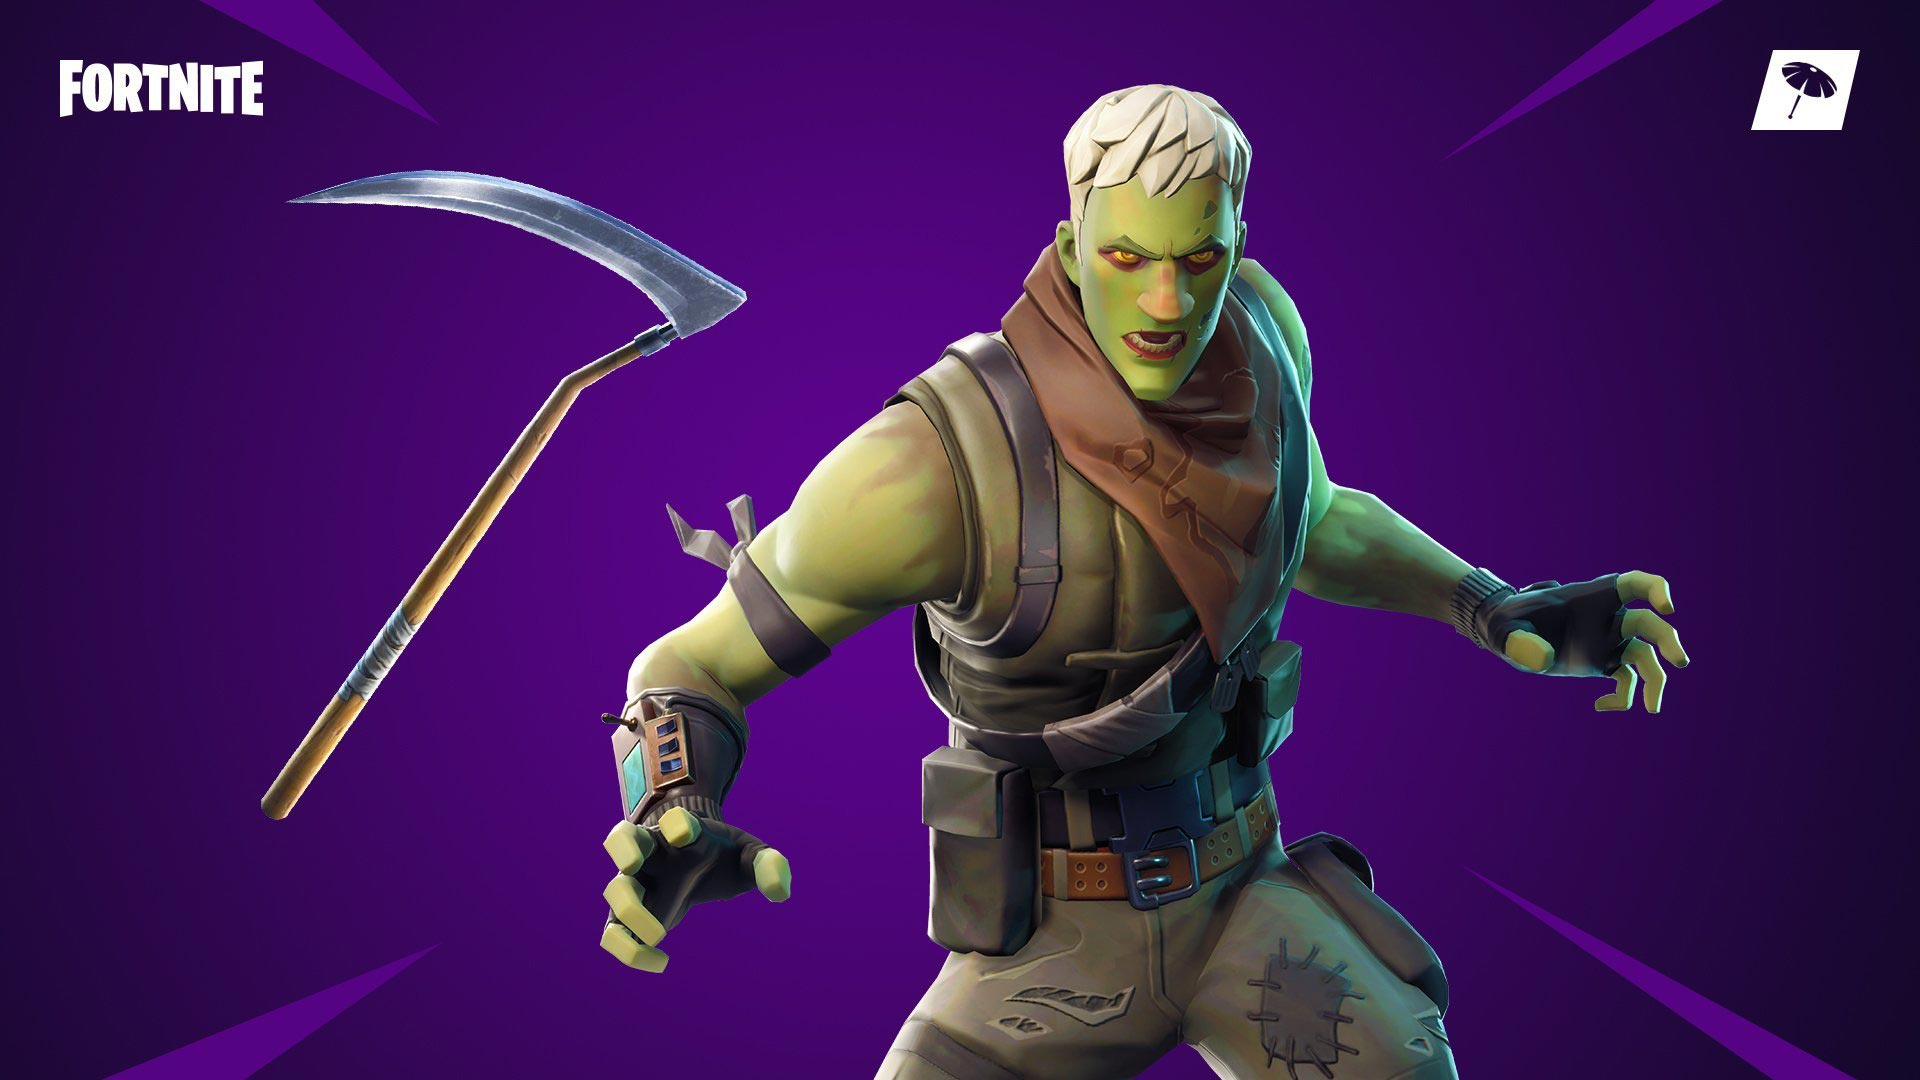 Fortnite Skin Brainiac Wallpaper